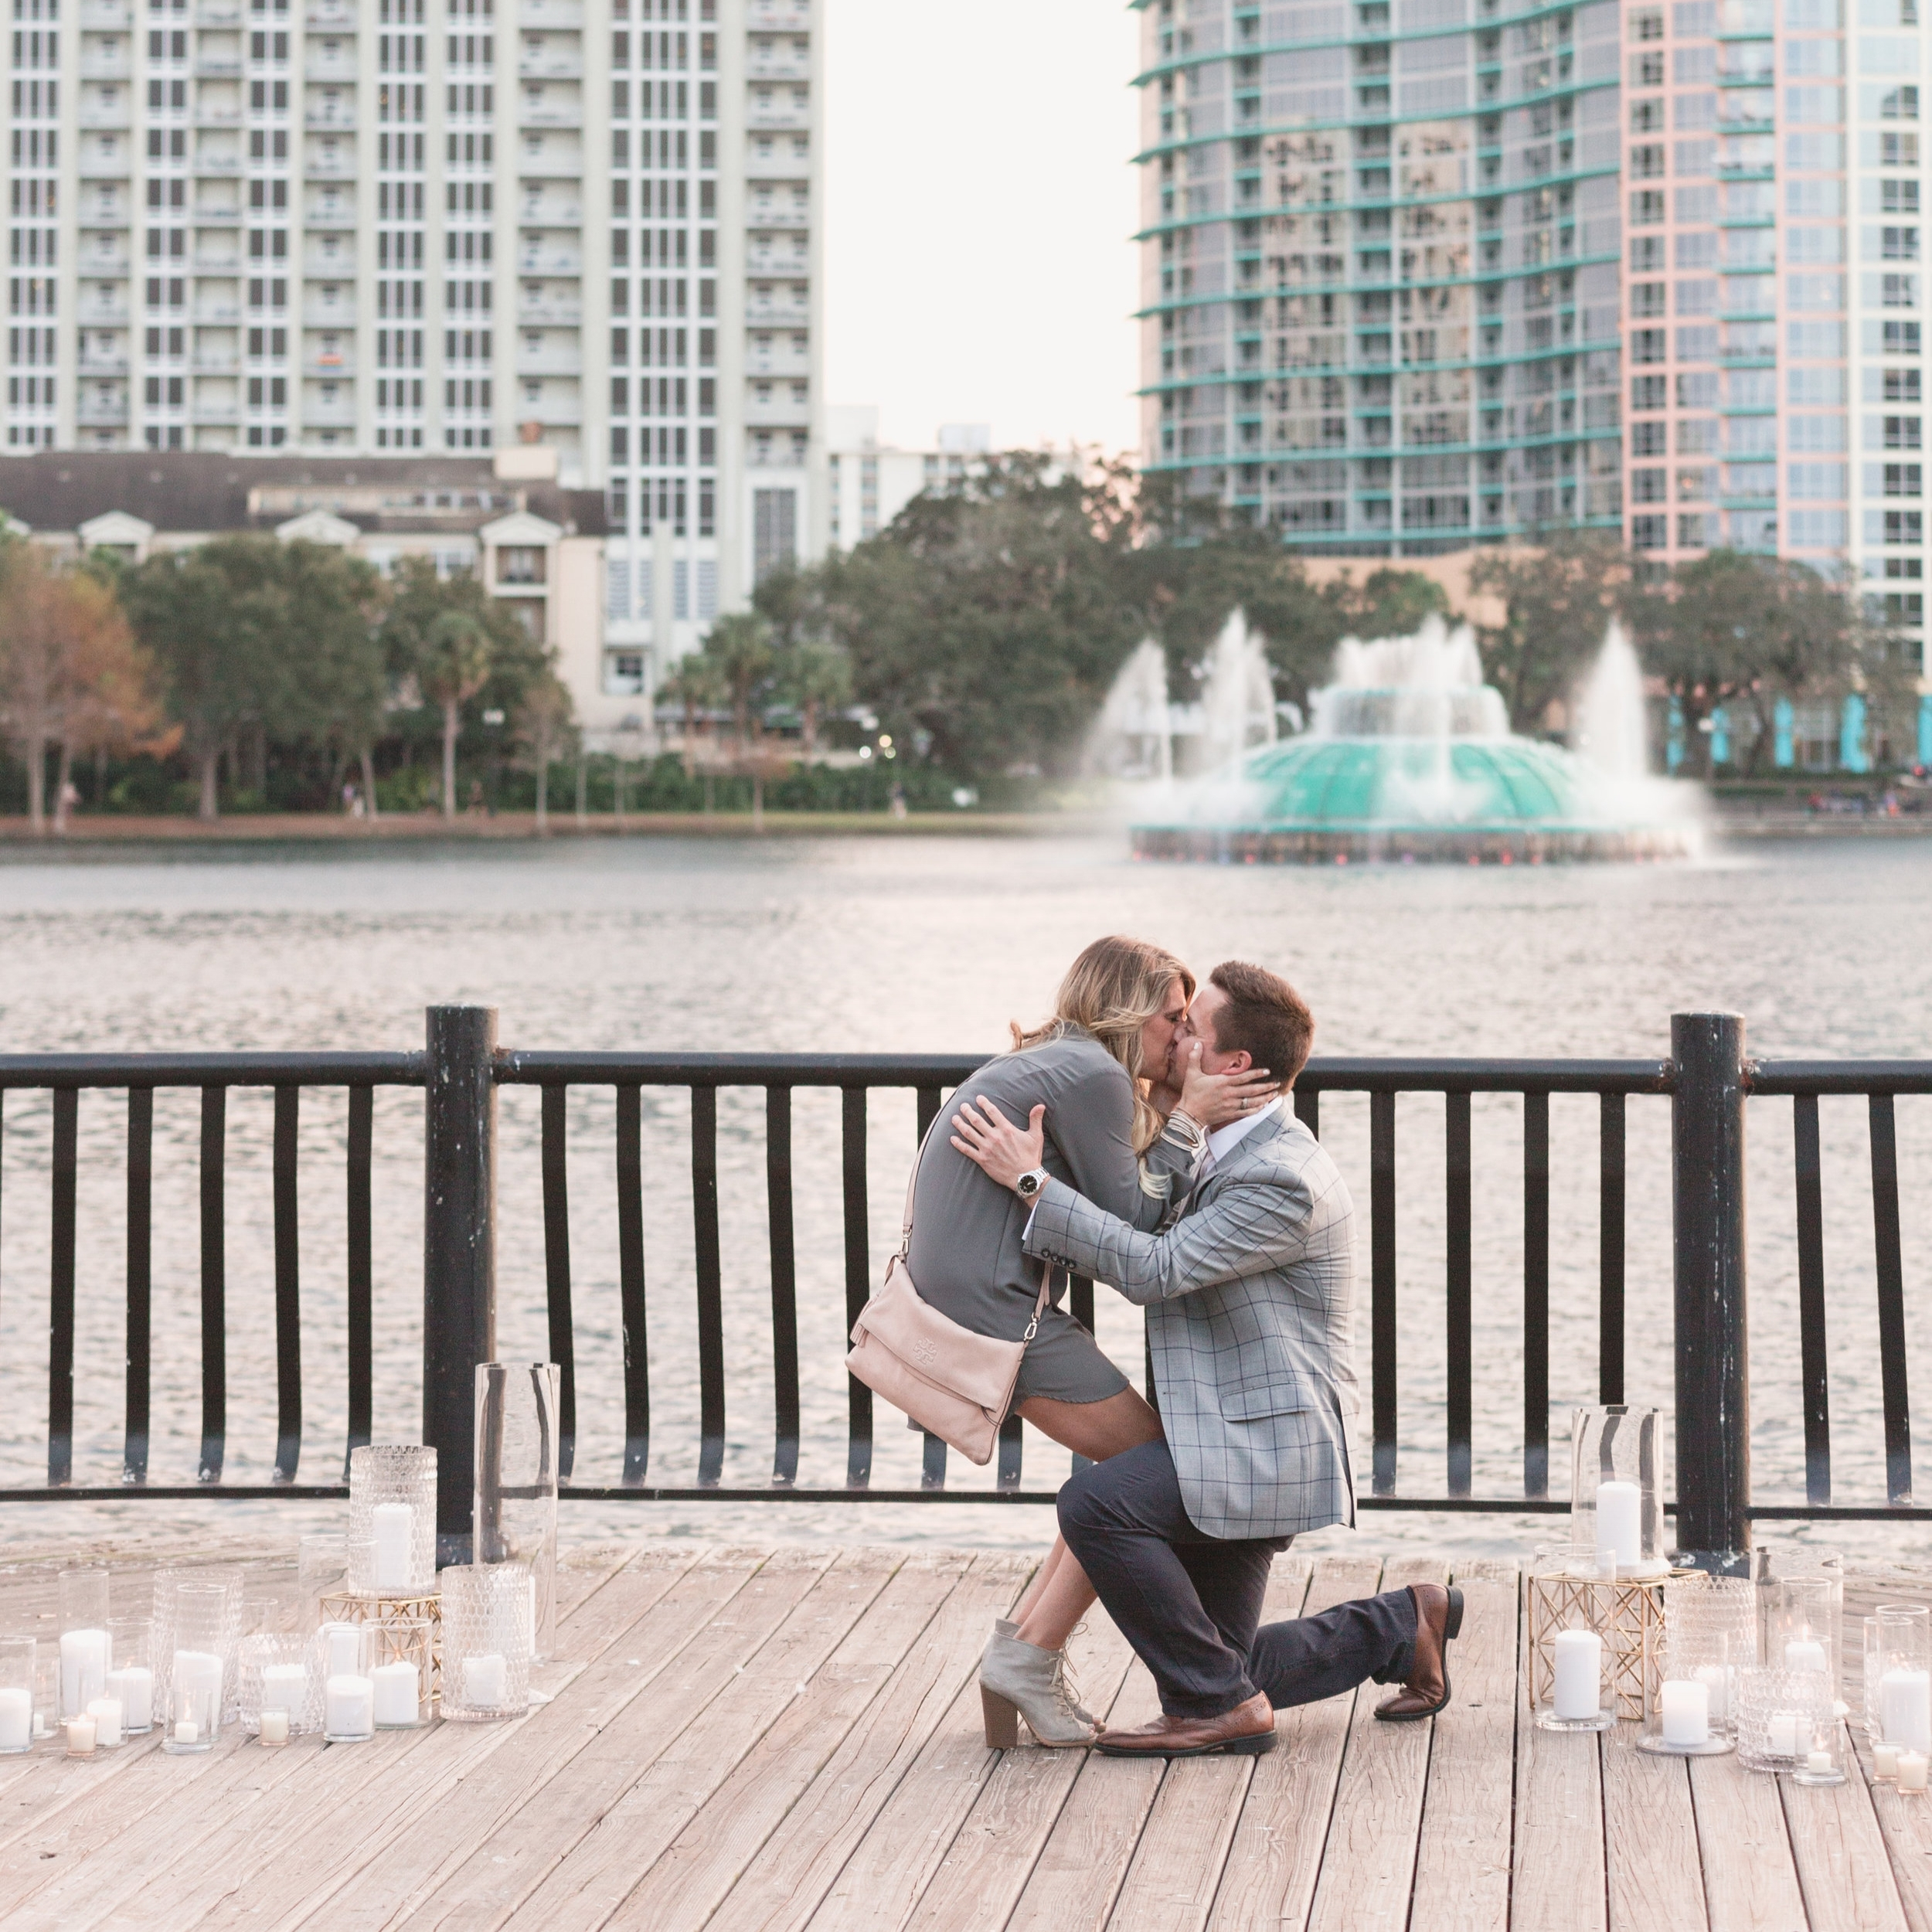 KatieKevin-Proposal-1.12.18-30.jpg